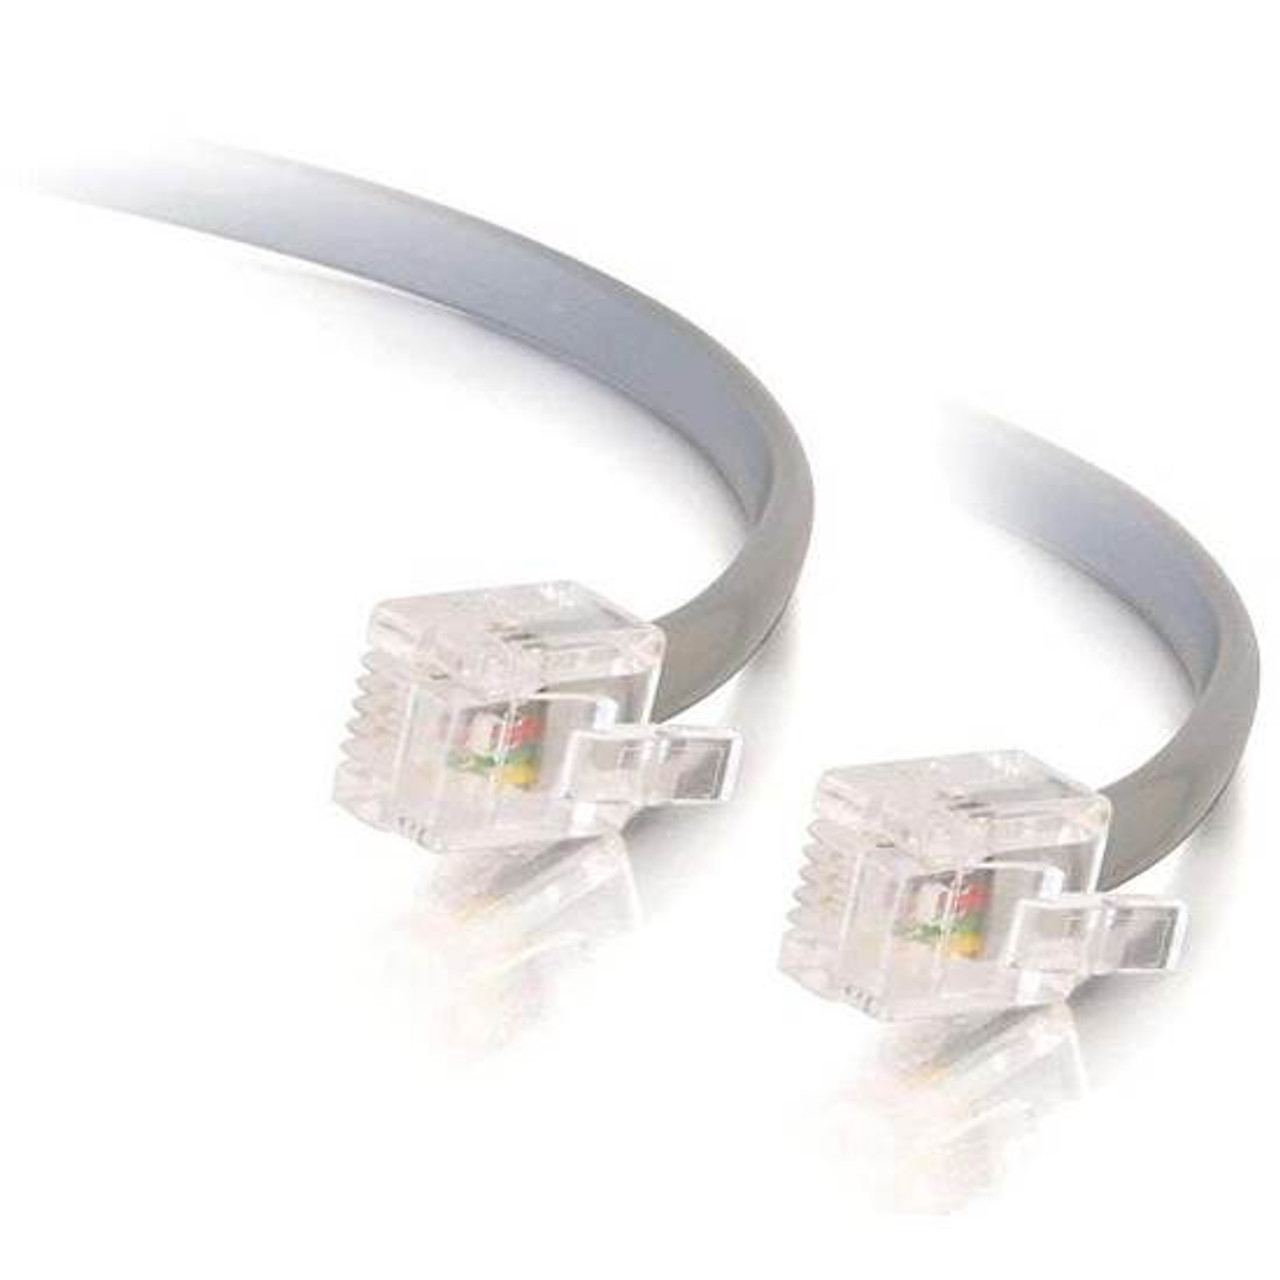 Image for Alogic 1m RJ11 Modular Telephone Cable (M/M) CX Computer Superstore